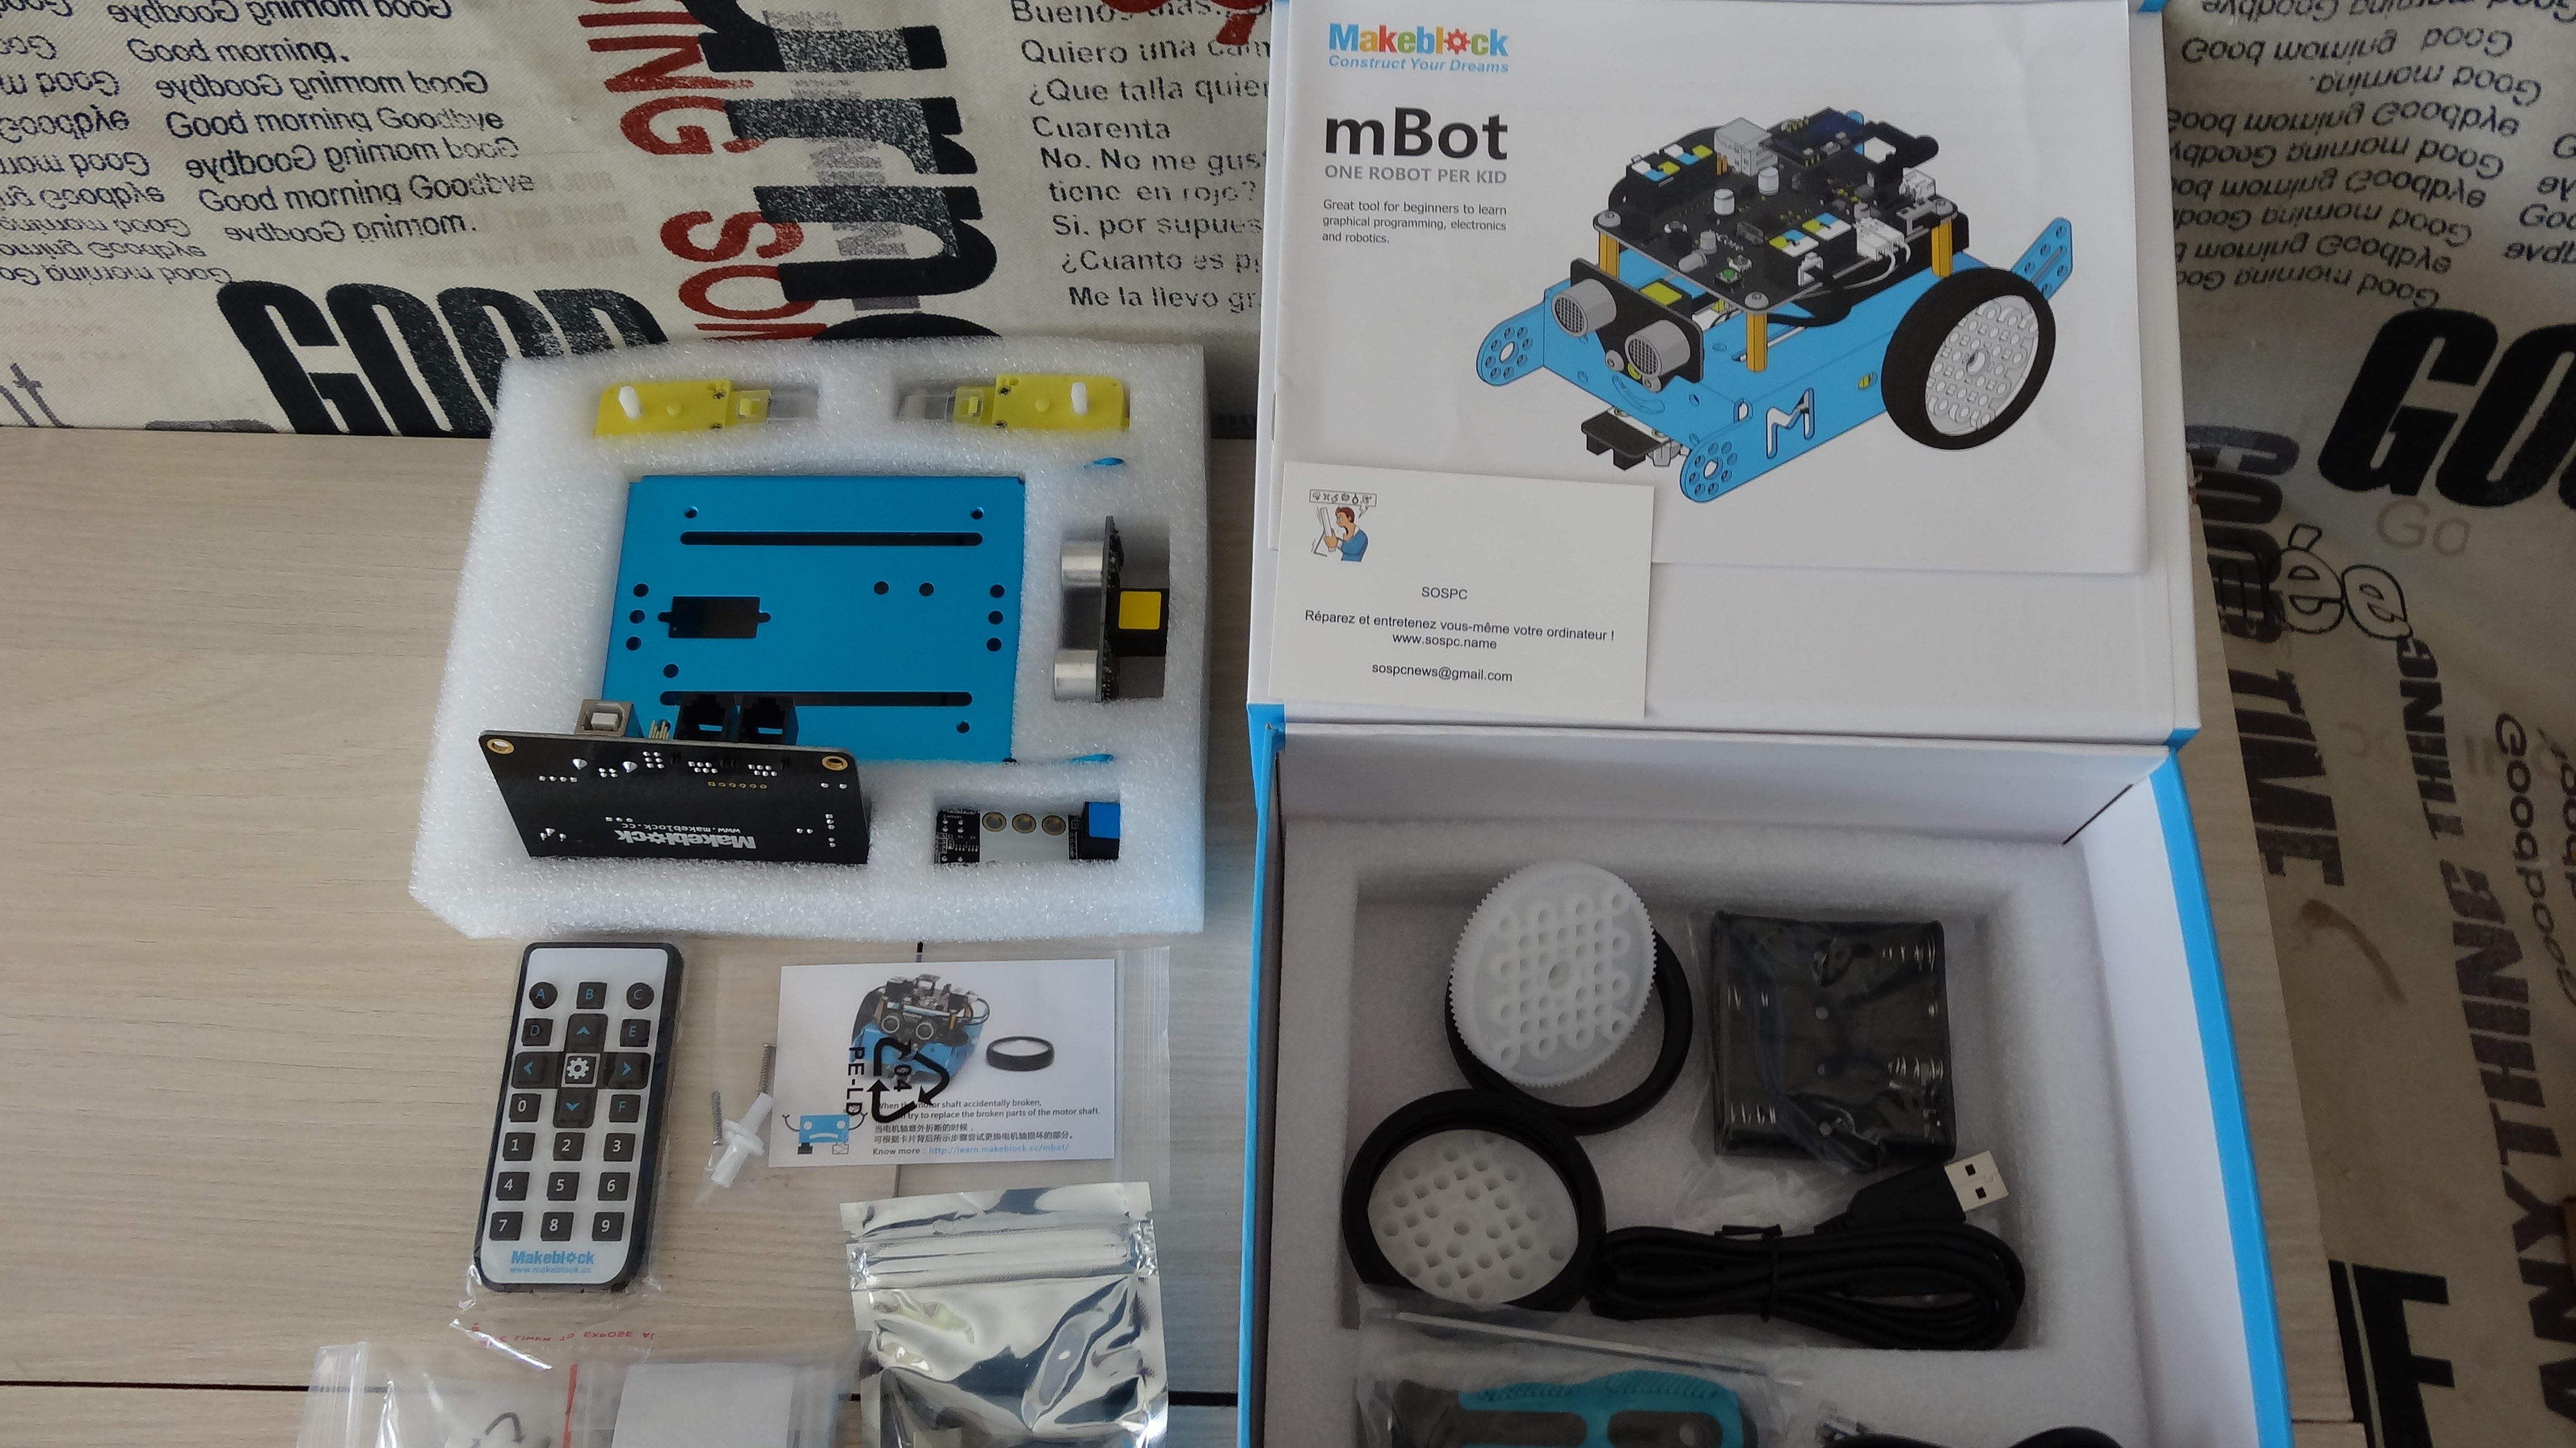 mbot-blue-un-robot-educatif-et-programmable-en-version-2-4-g-tres-interessant-legaragedupc-fr-3